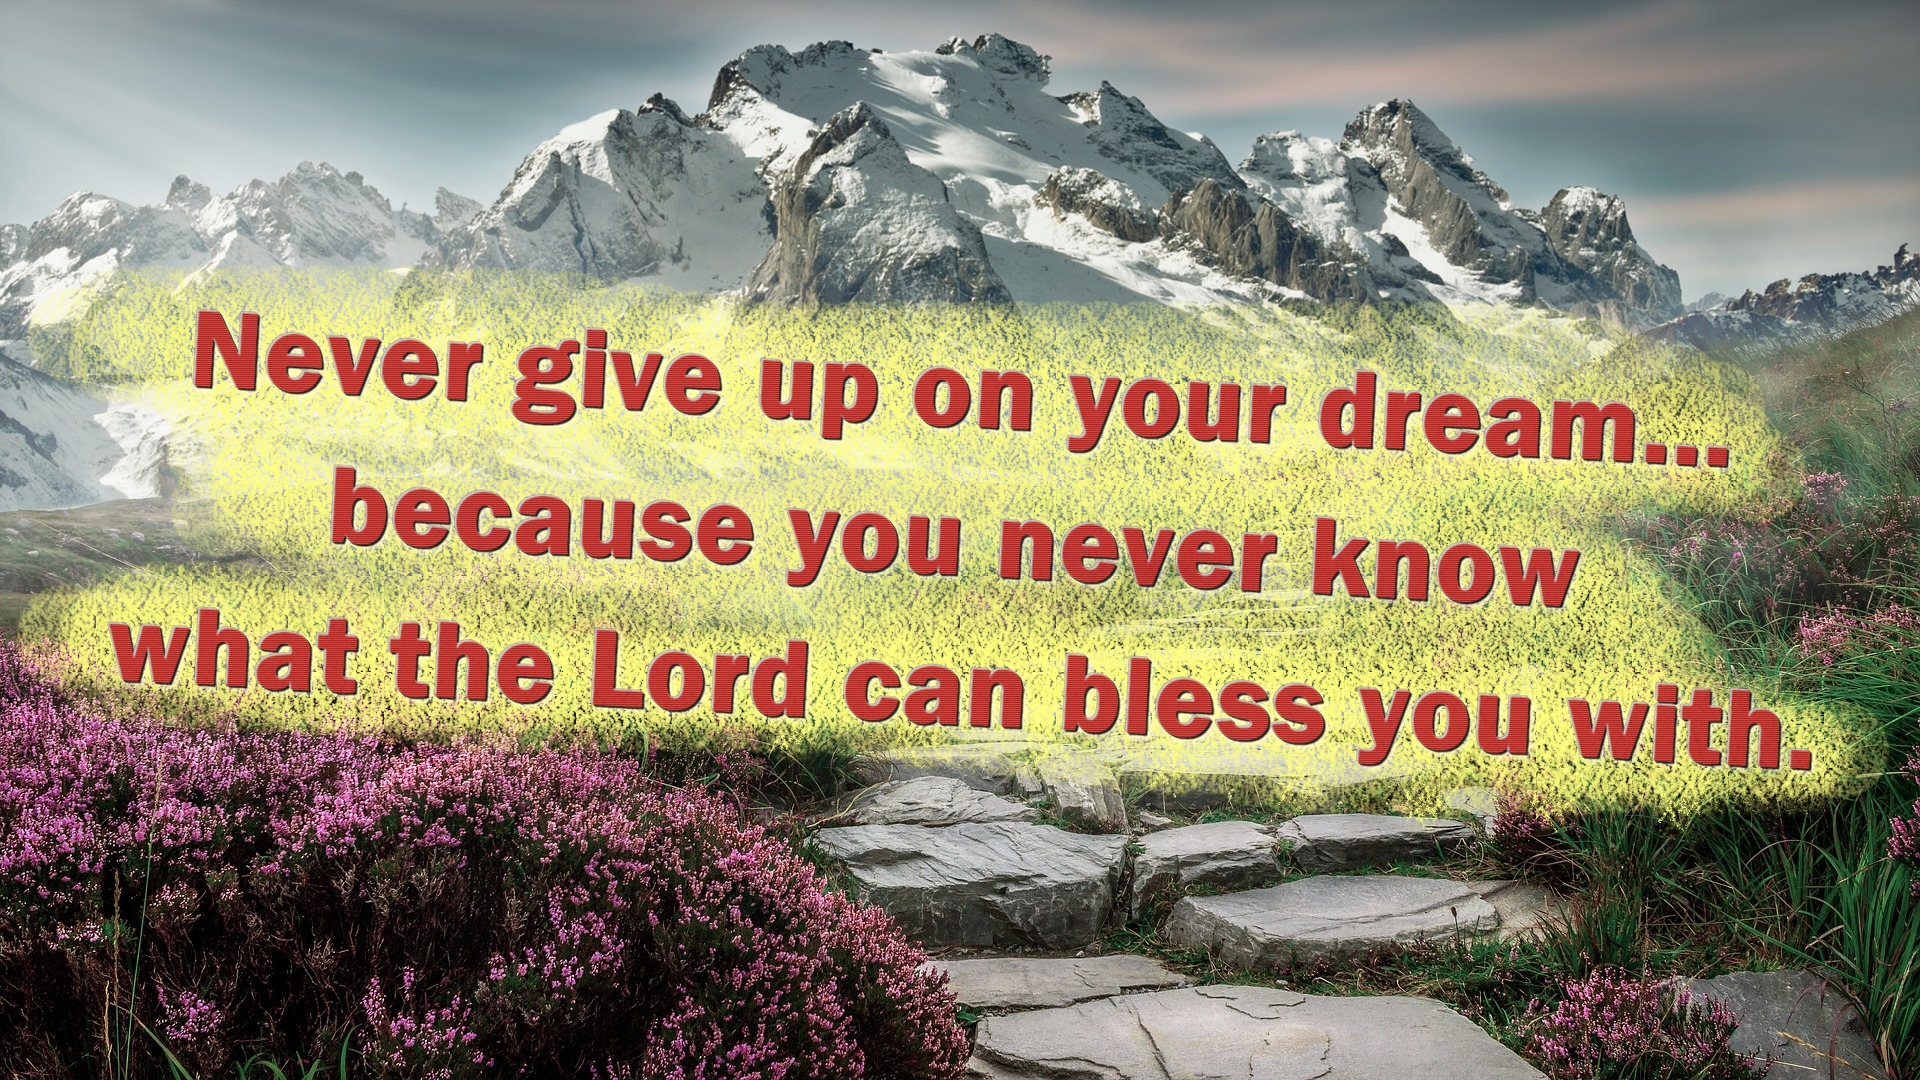 Never give up on your dream... because you never know what the Lord can bless you with.